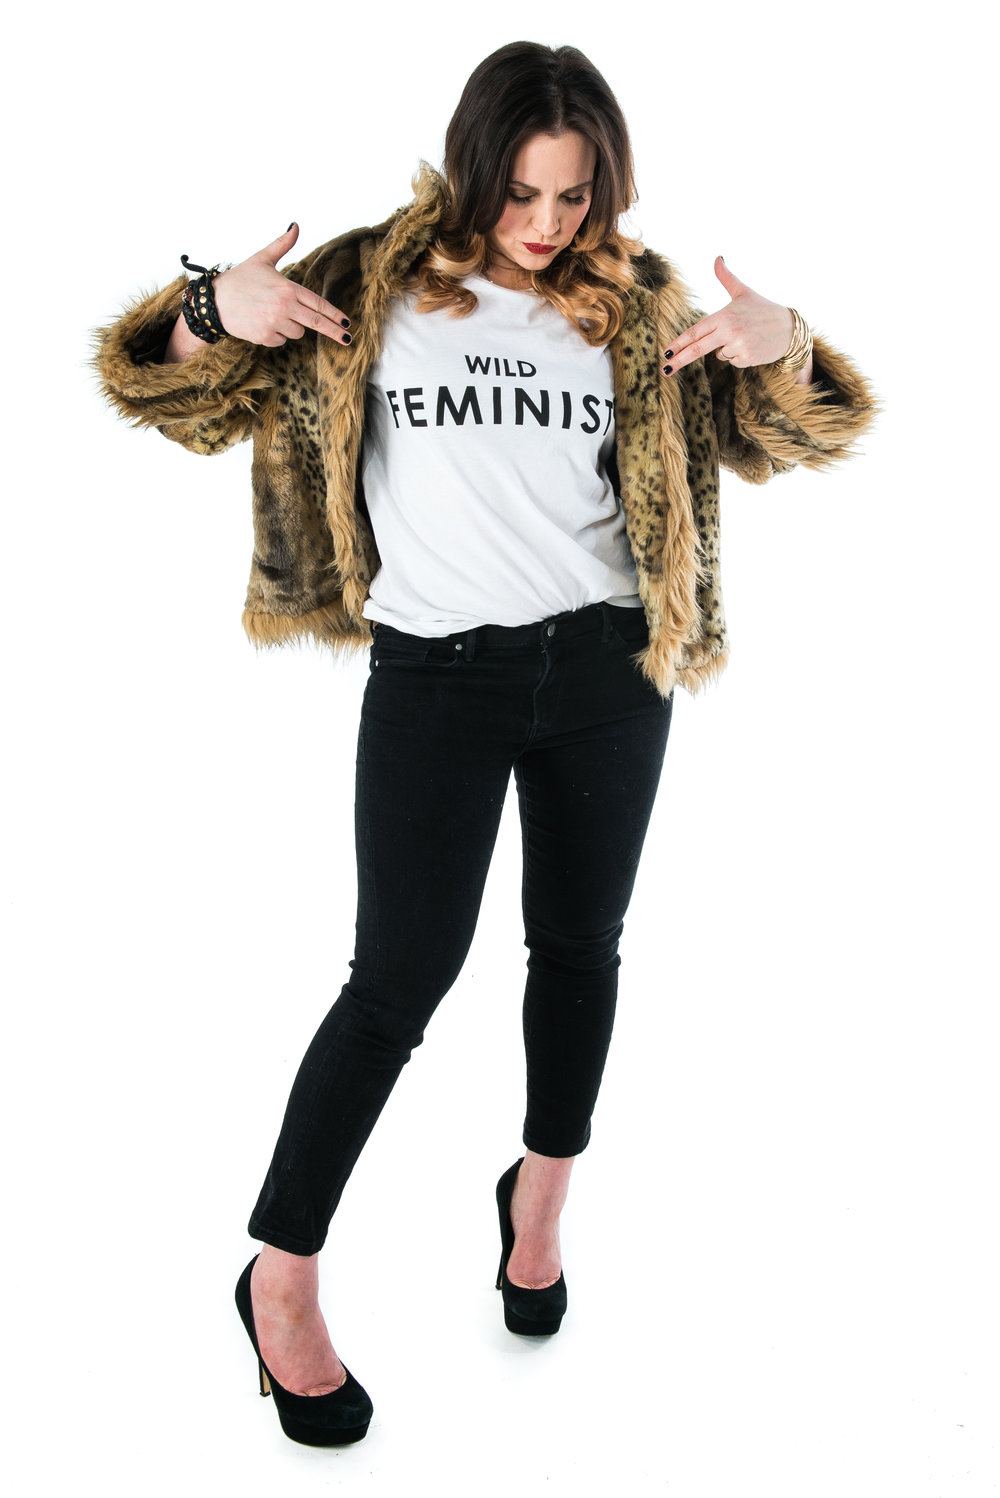 WildFeminist.jpeg